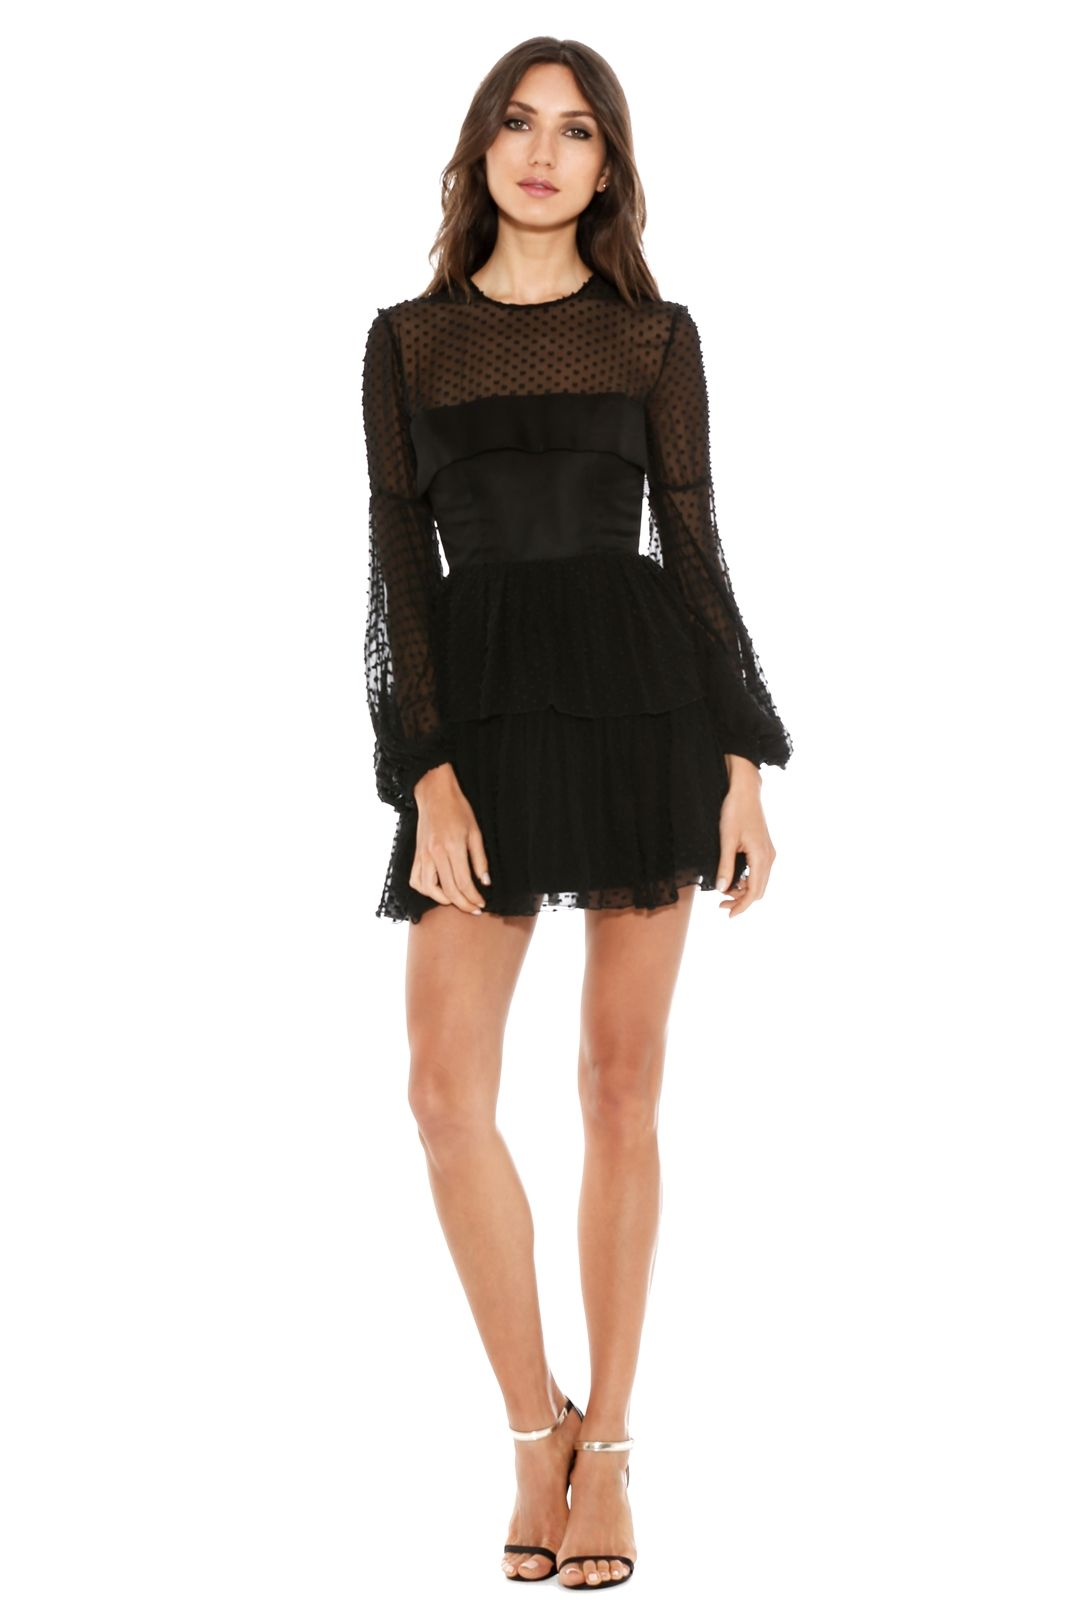 Alex Perry - Valerie Silk Cotton Mini Dress - Black - Front